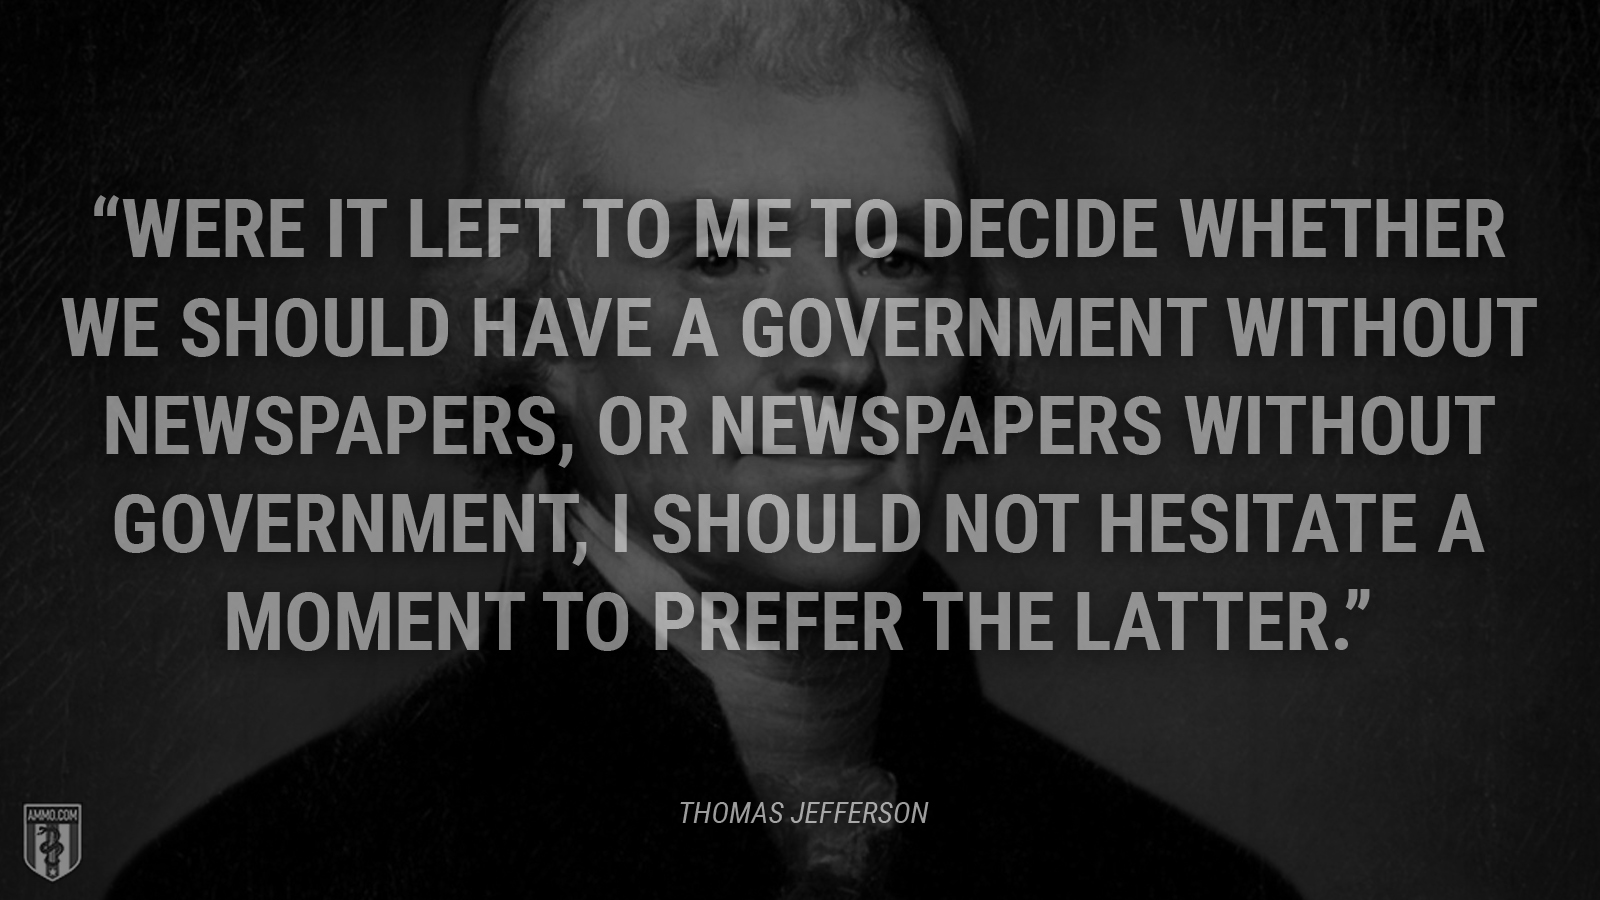 """Were it left to me to decide whether we should have a government without newspapers, or newspapers without government, I should not hesitate a moment to prefer the latter."" - Thomas Jefferson"